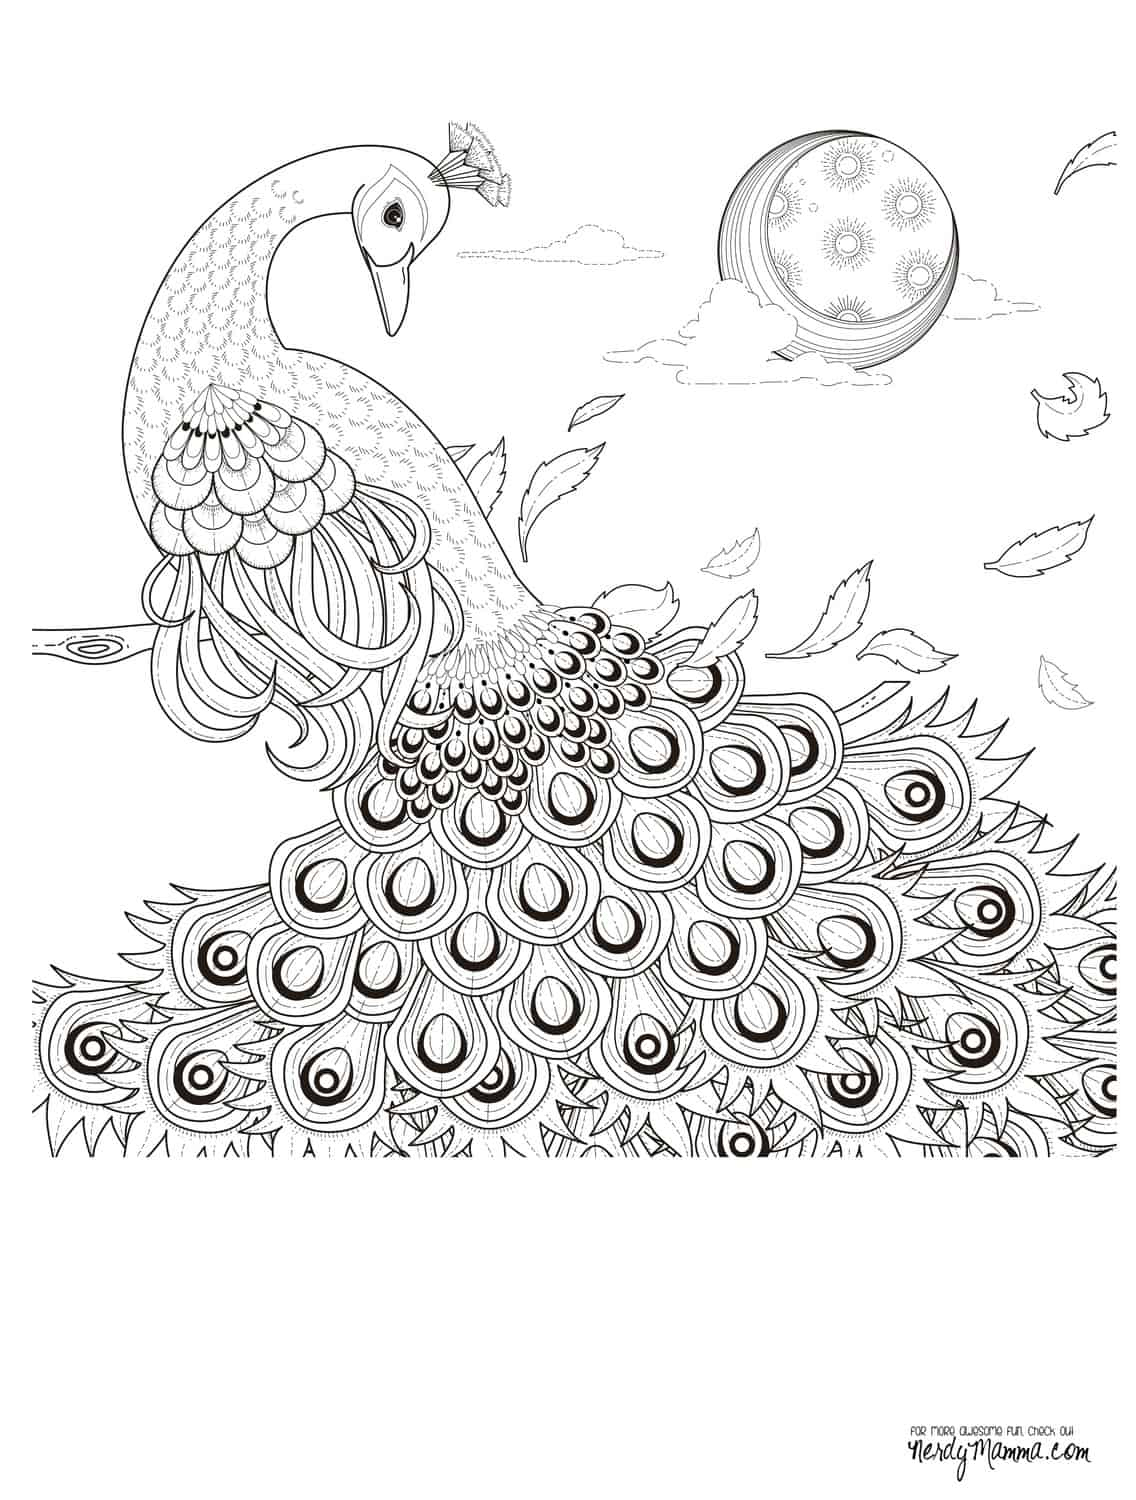 11 free printable adult coloring pages for Coloring page peacock